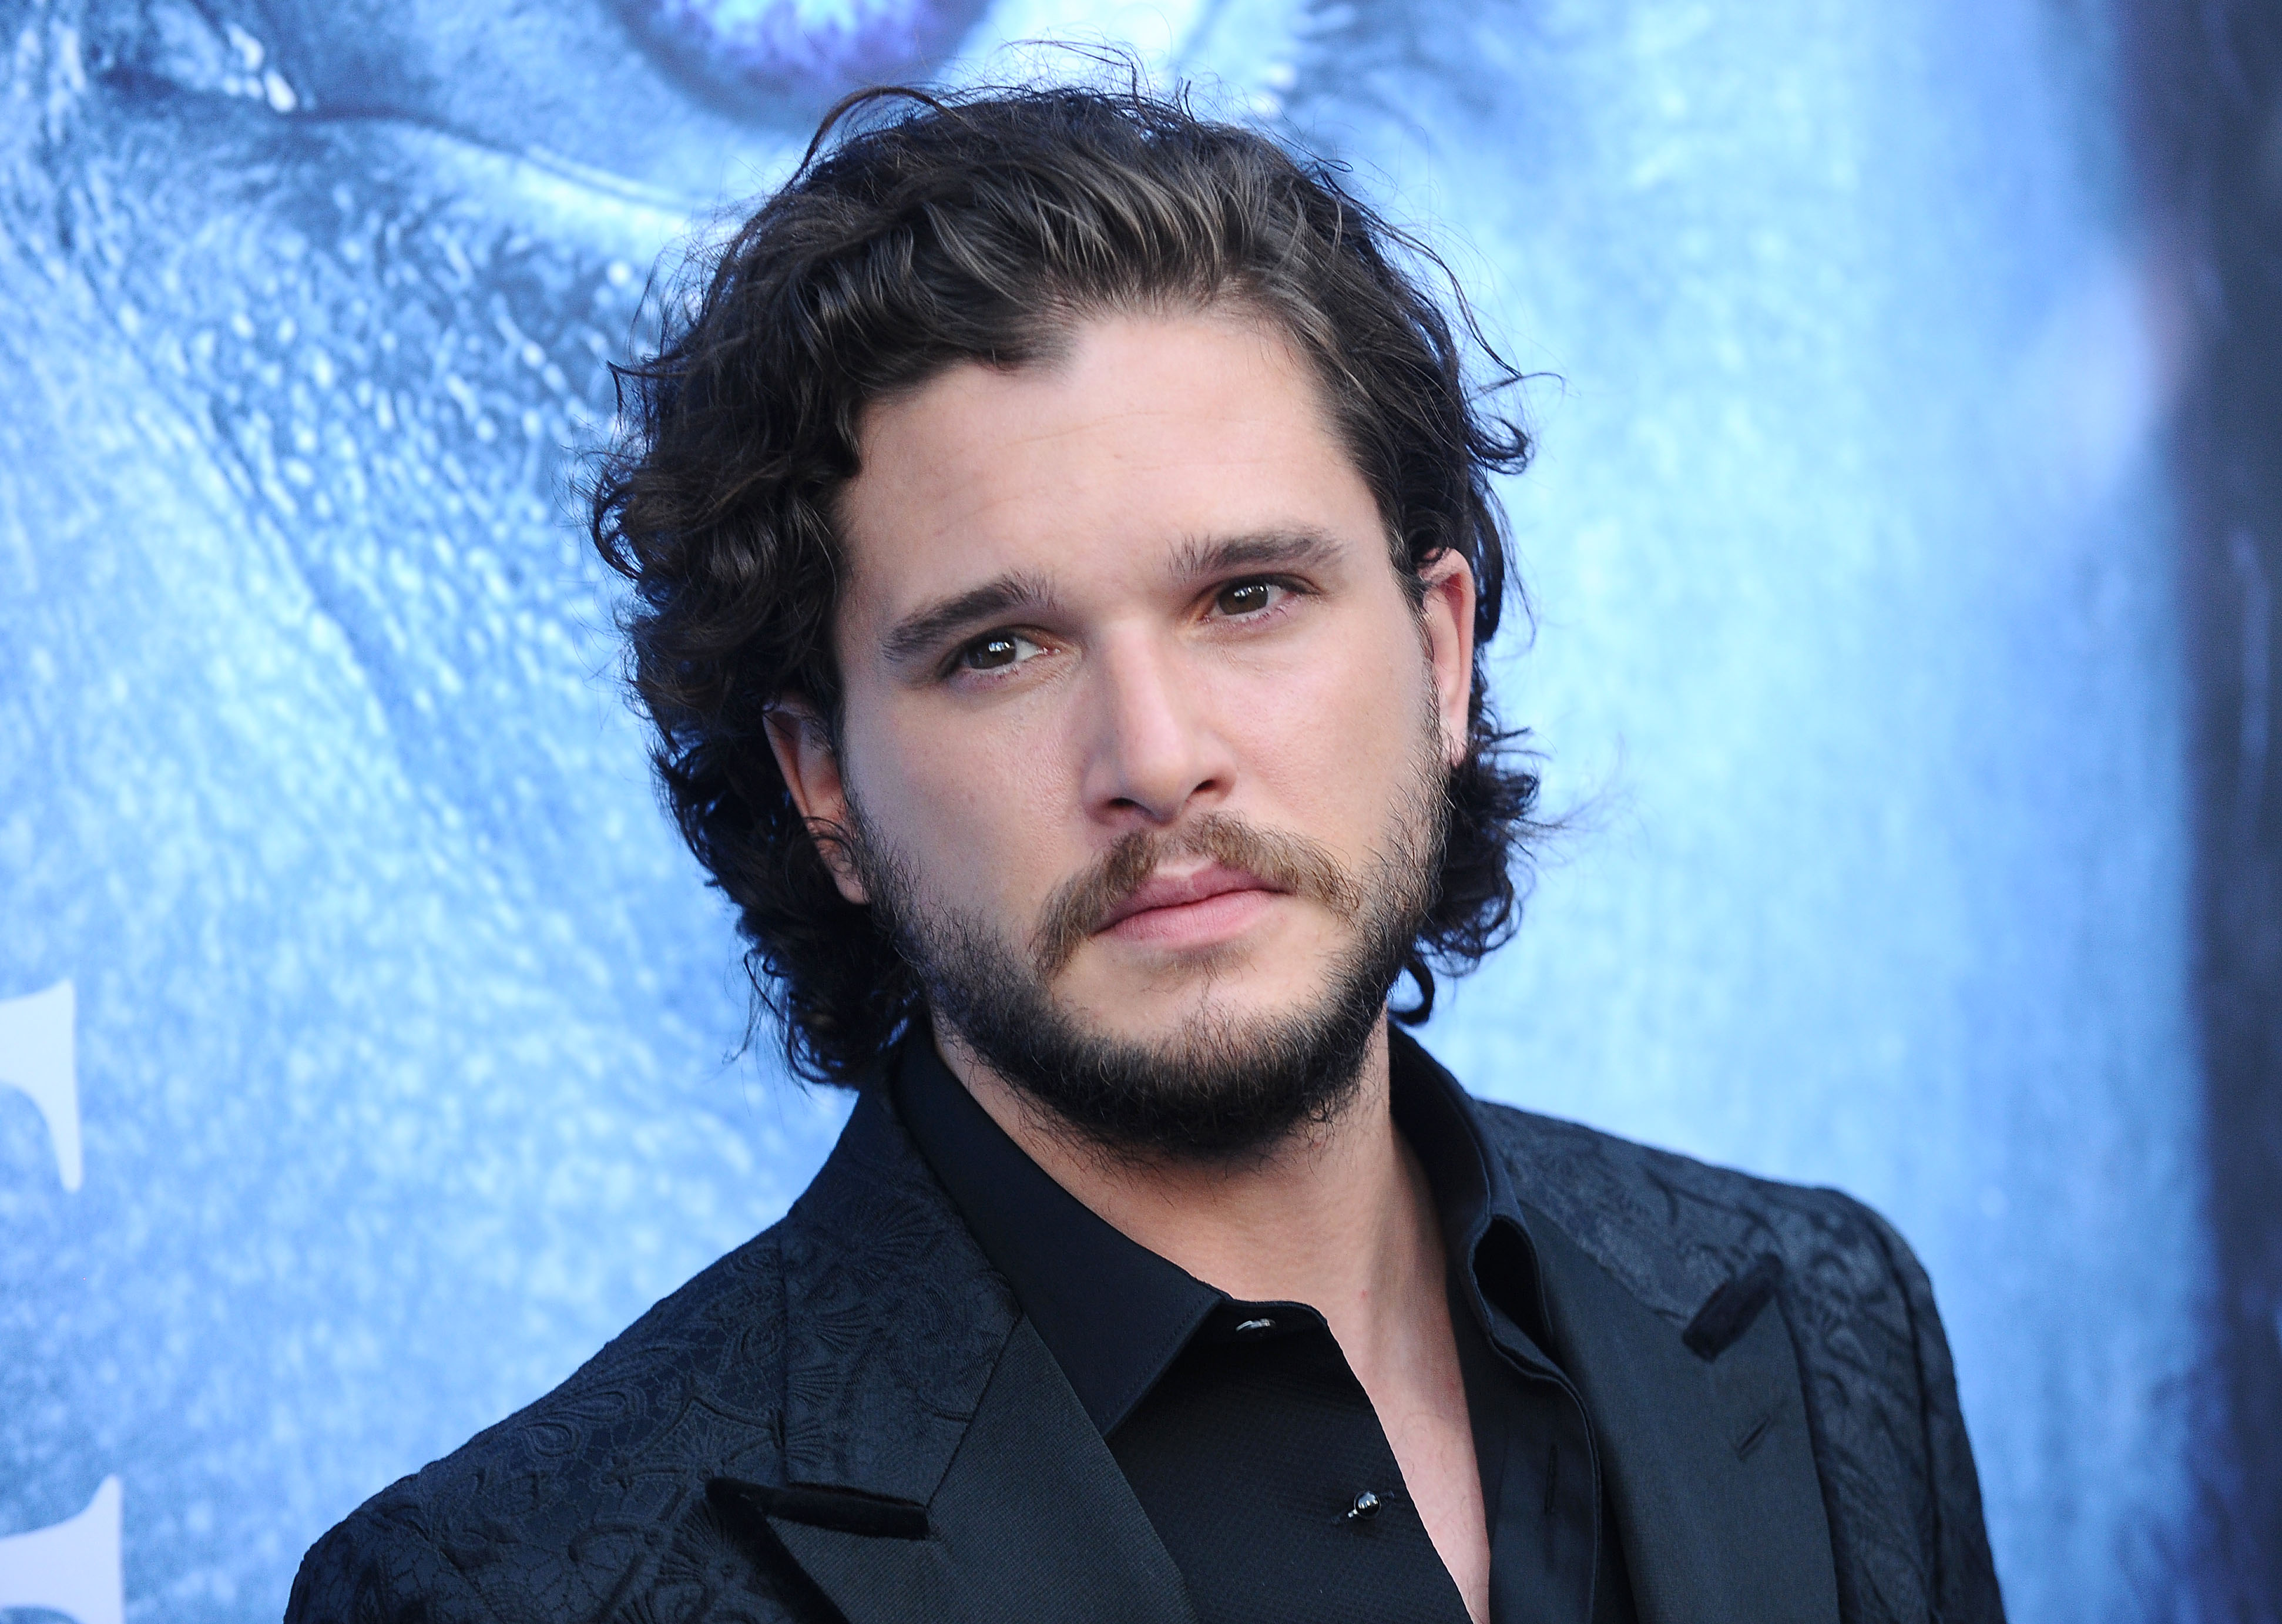 Actor Kit Harington attends the season 7 premiere of  Game Of Thrones  at Walt Disney Concert Hall on July 12, 2017 in Los Angeles, Calif.